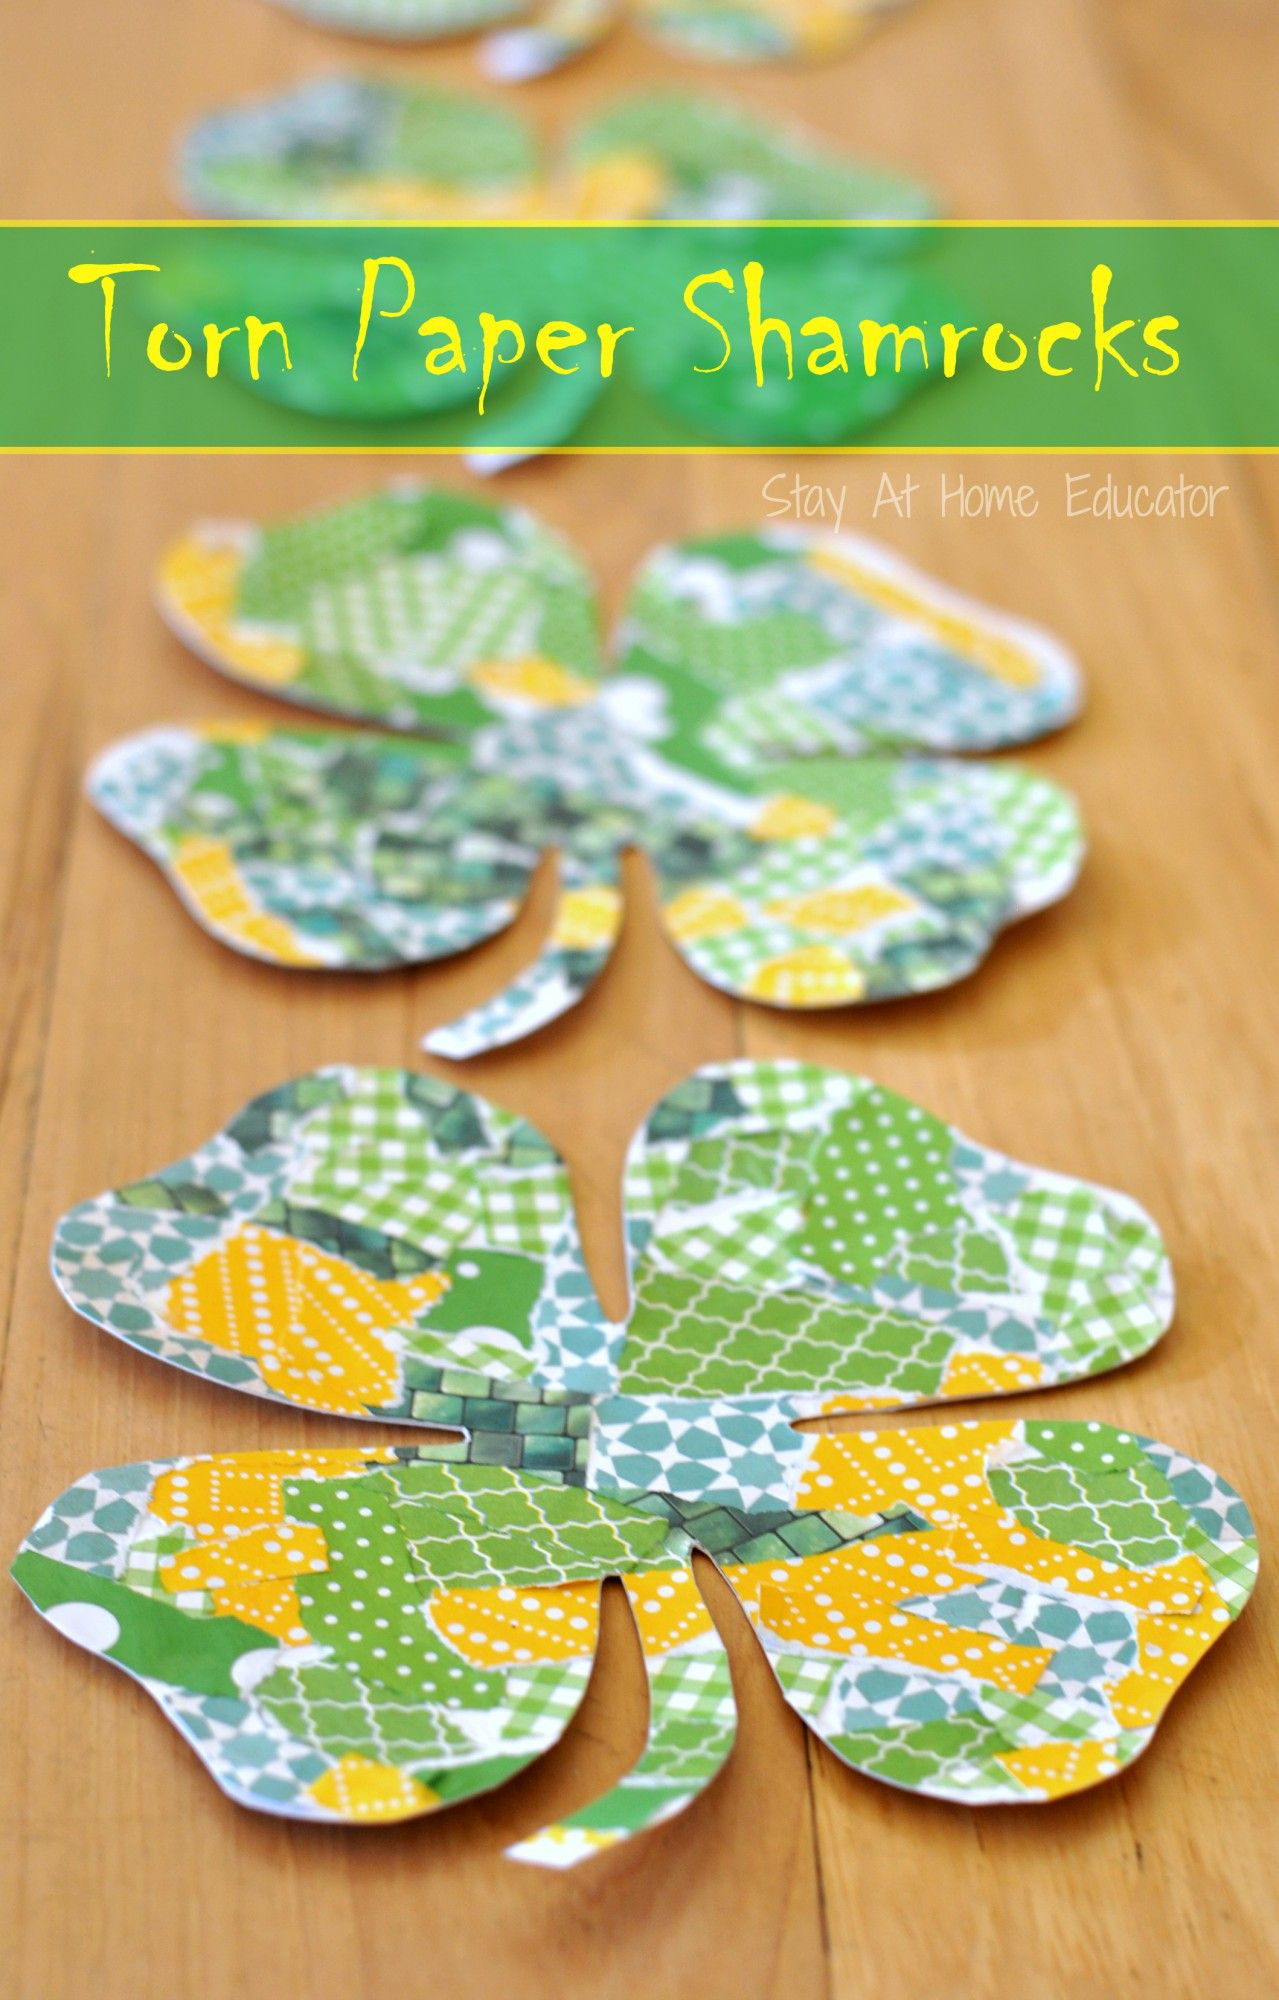 Torn Paper Shamrock Craft  Stay At Home Educator (Preschool